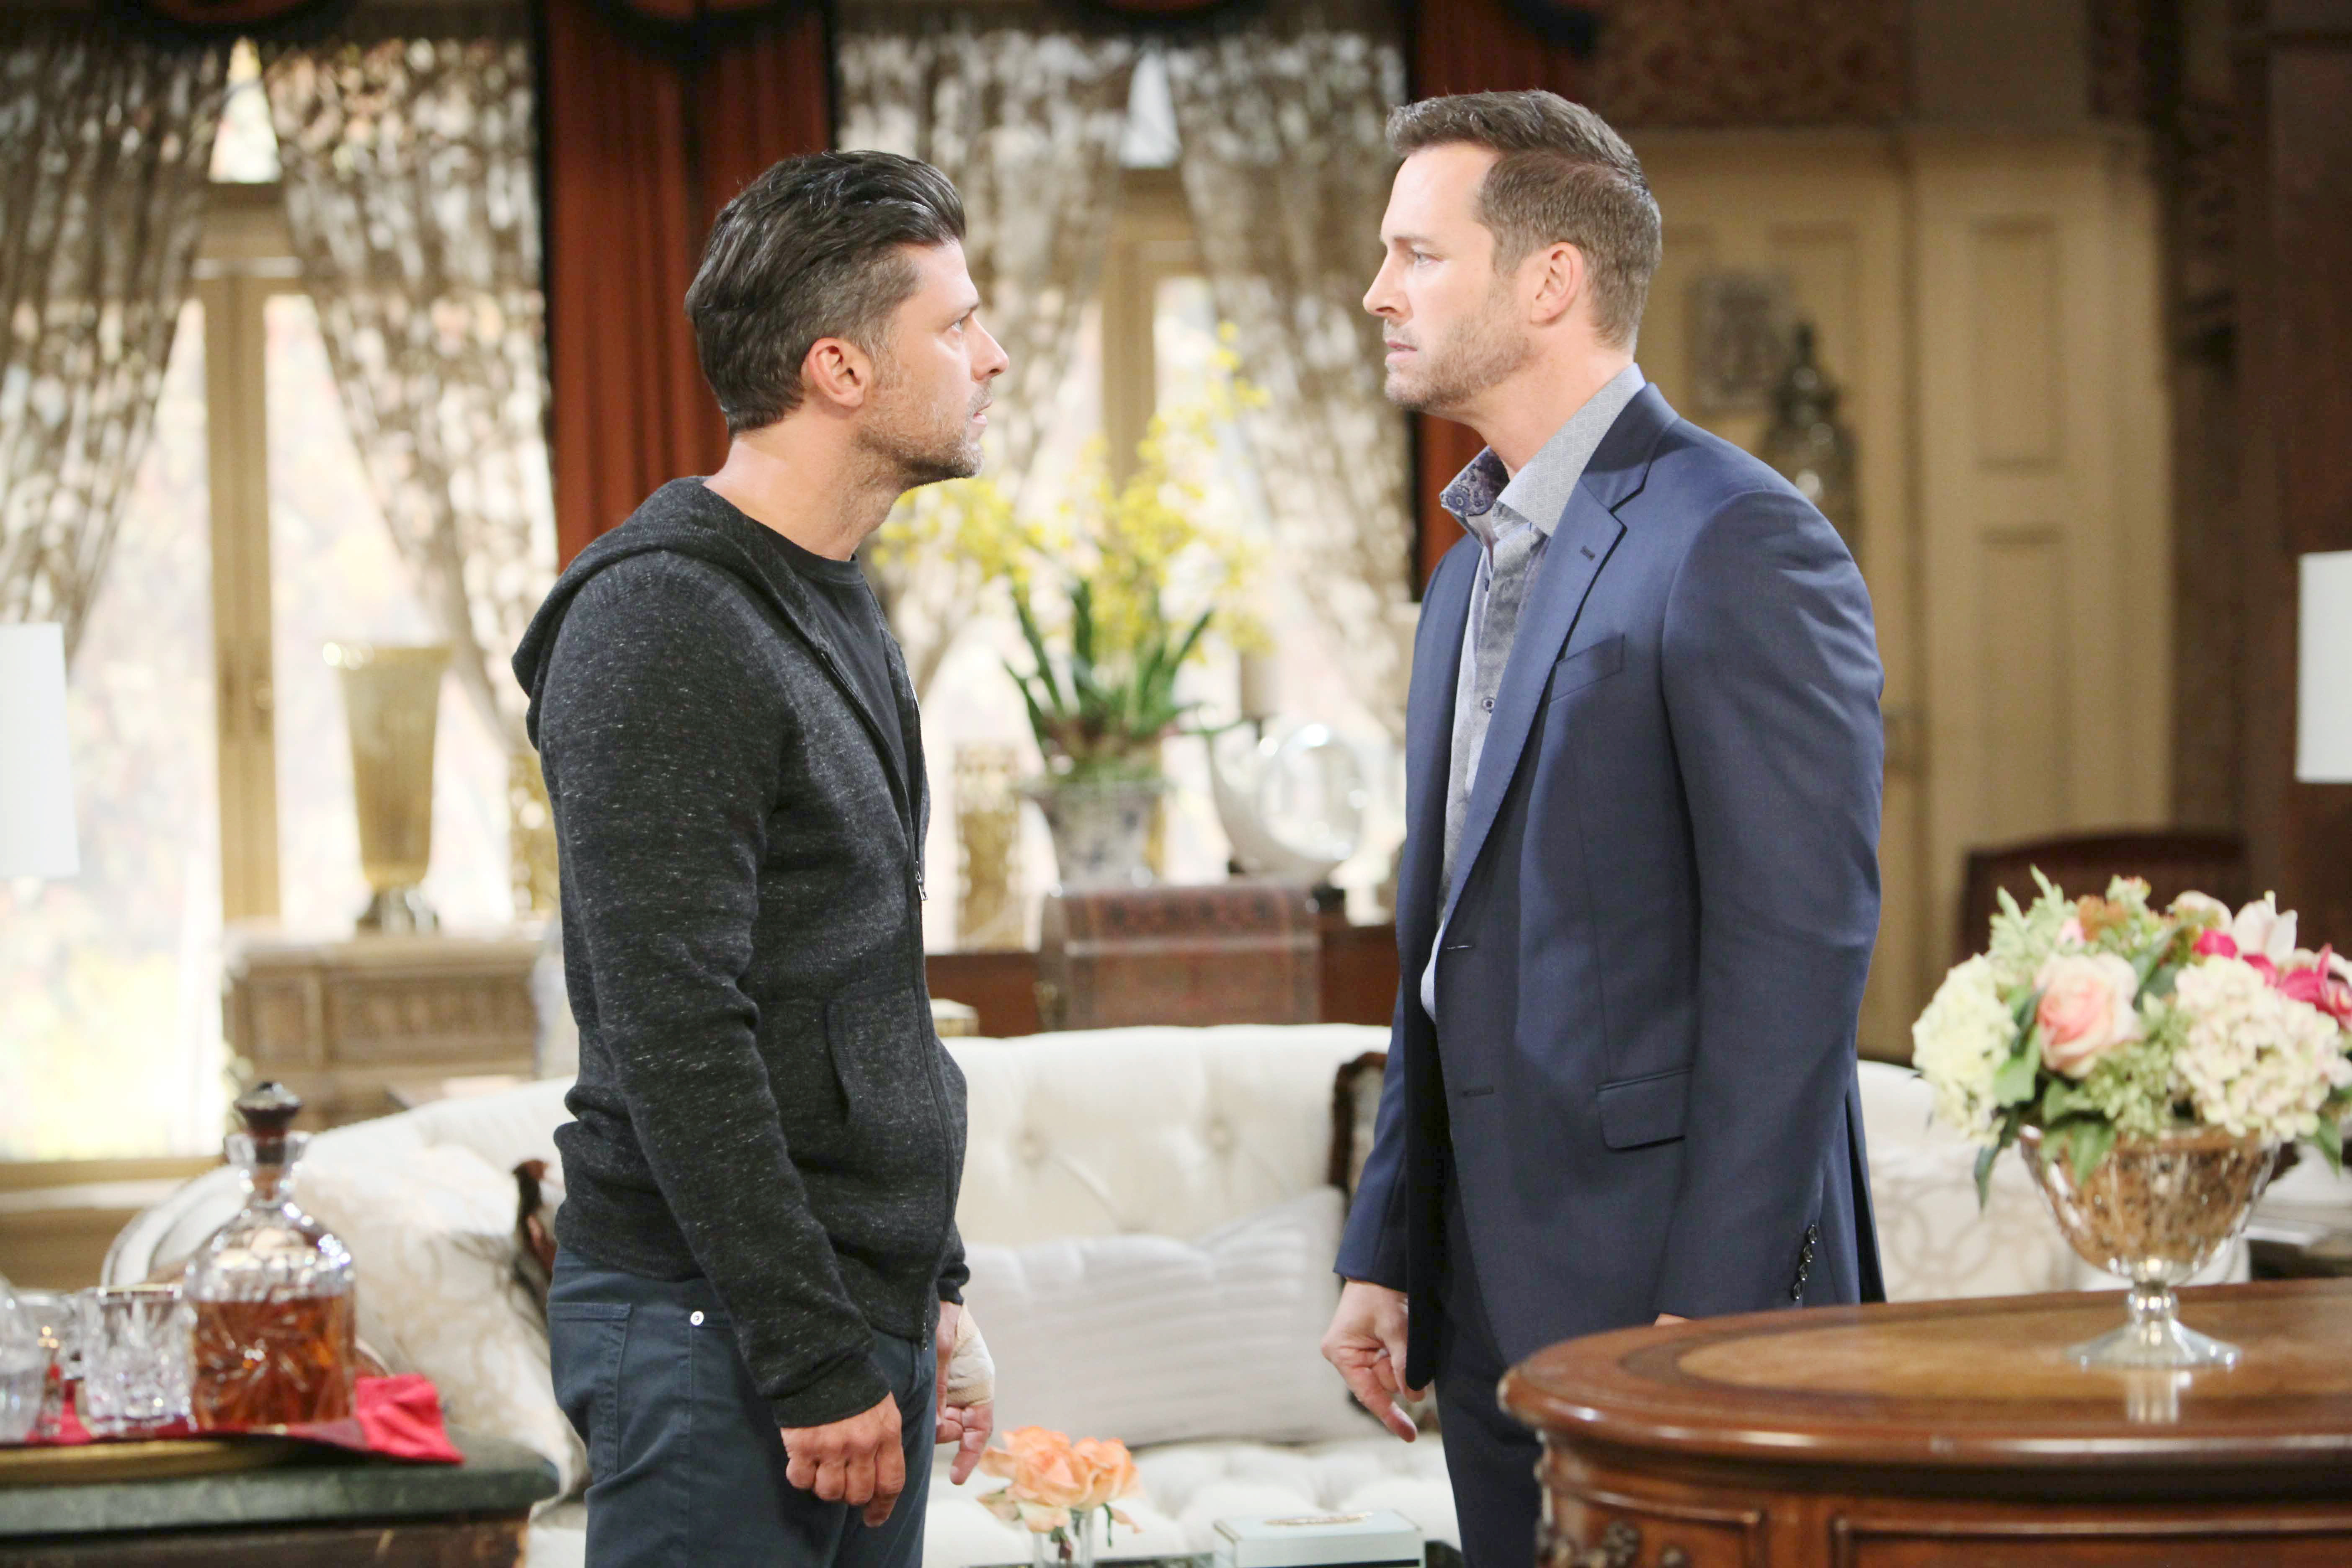 DOOL Spoilers: Eric and Brady have a tense run-in.